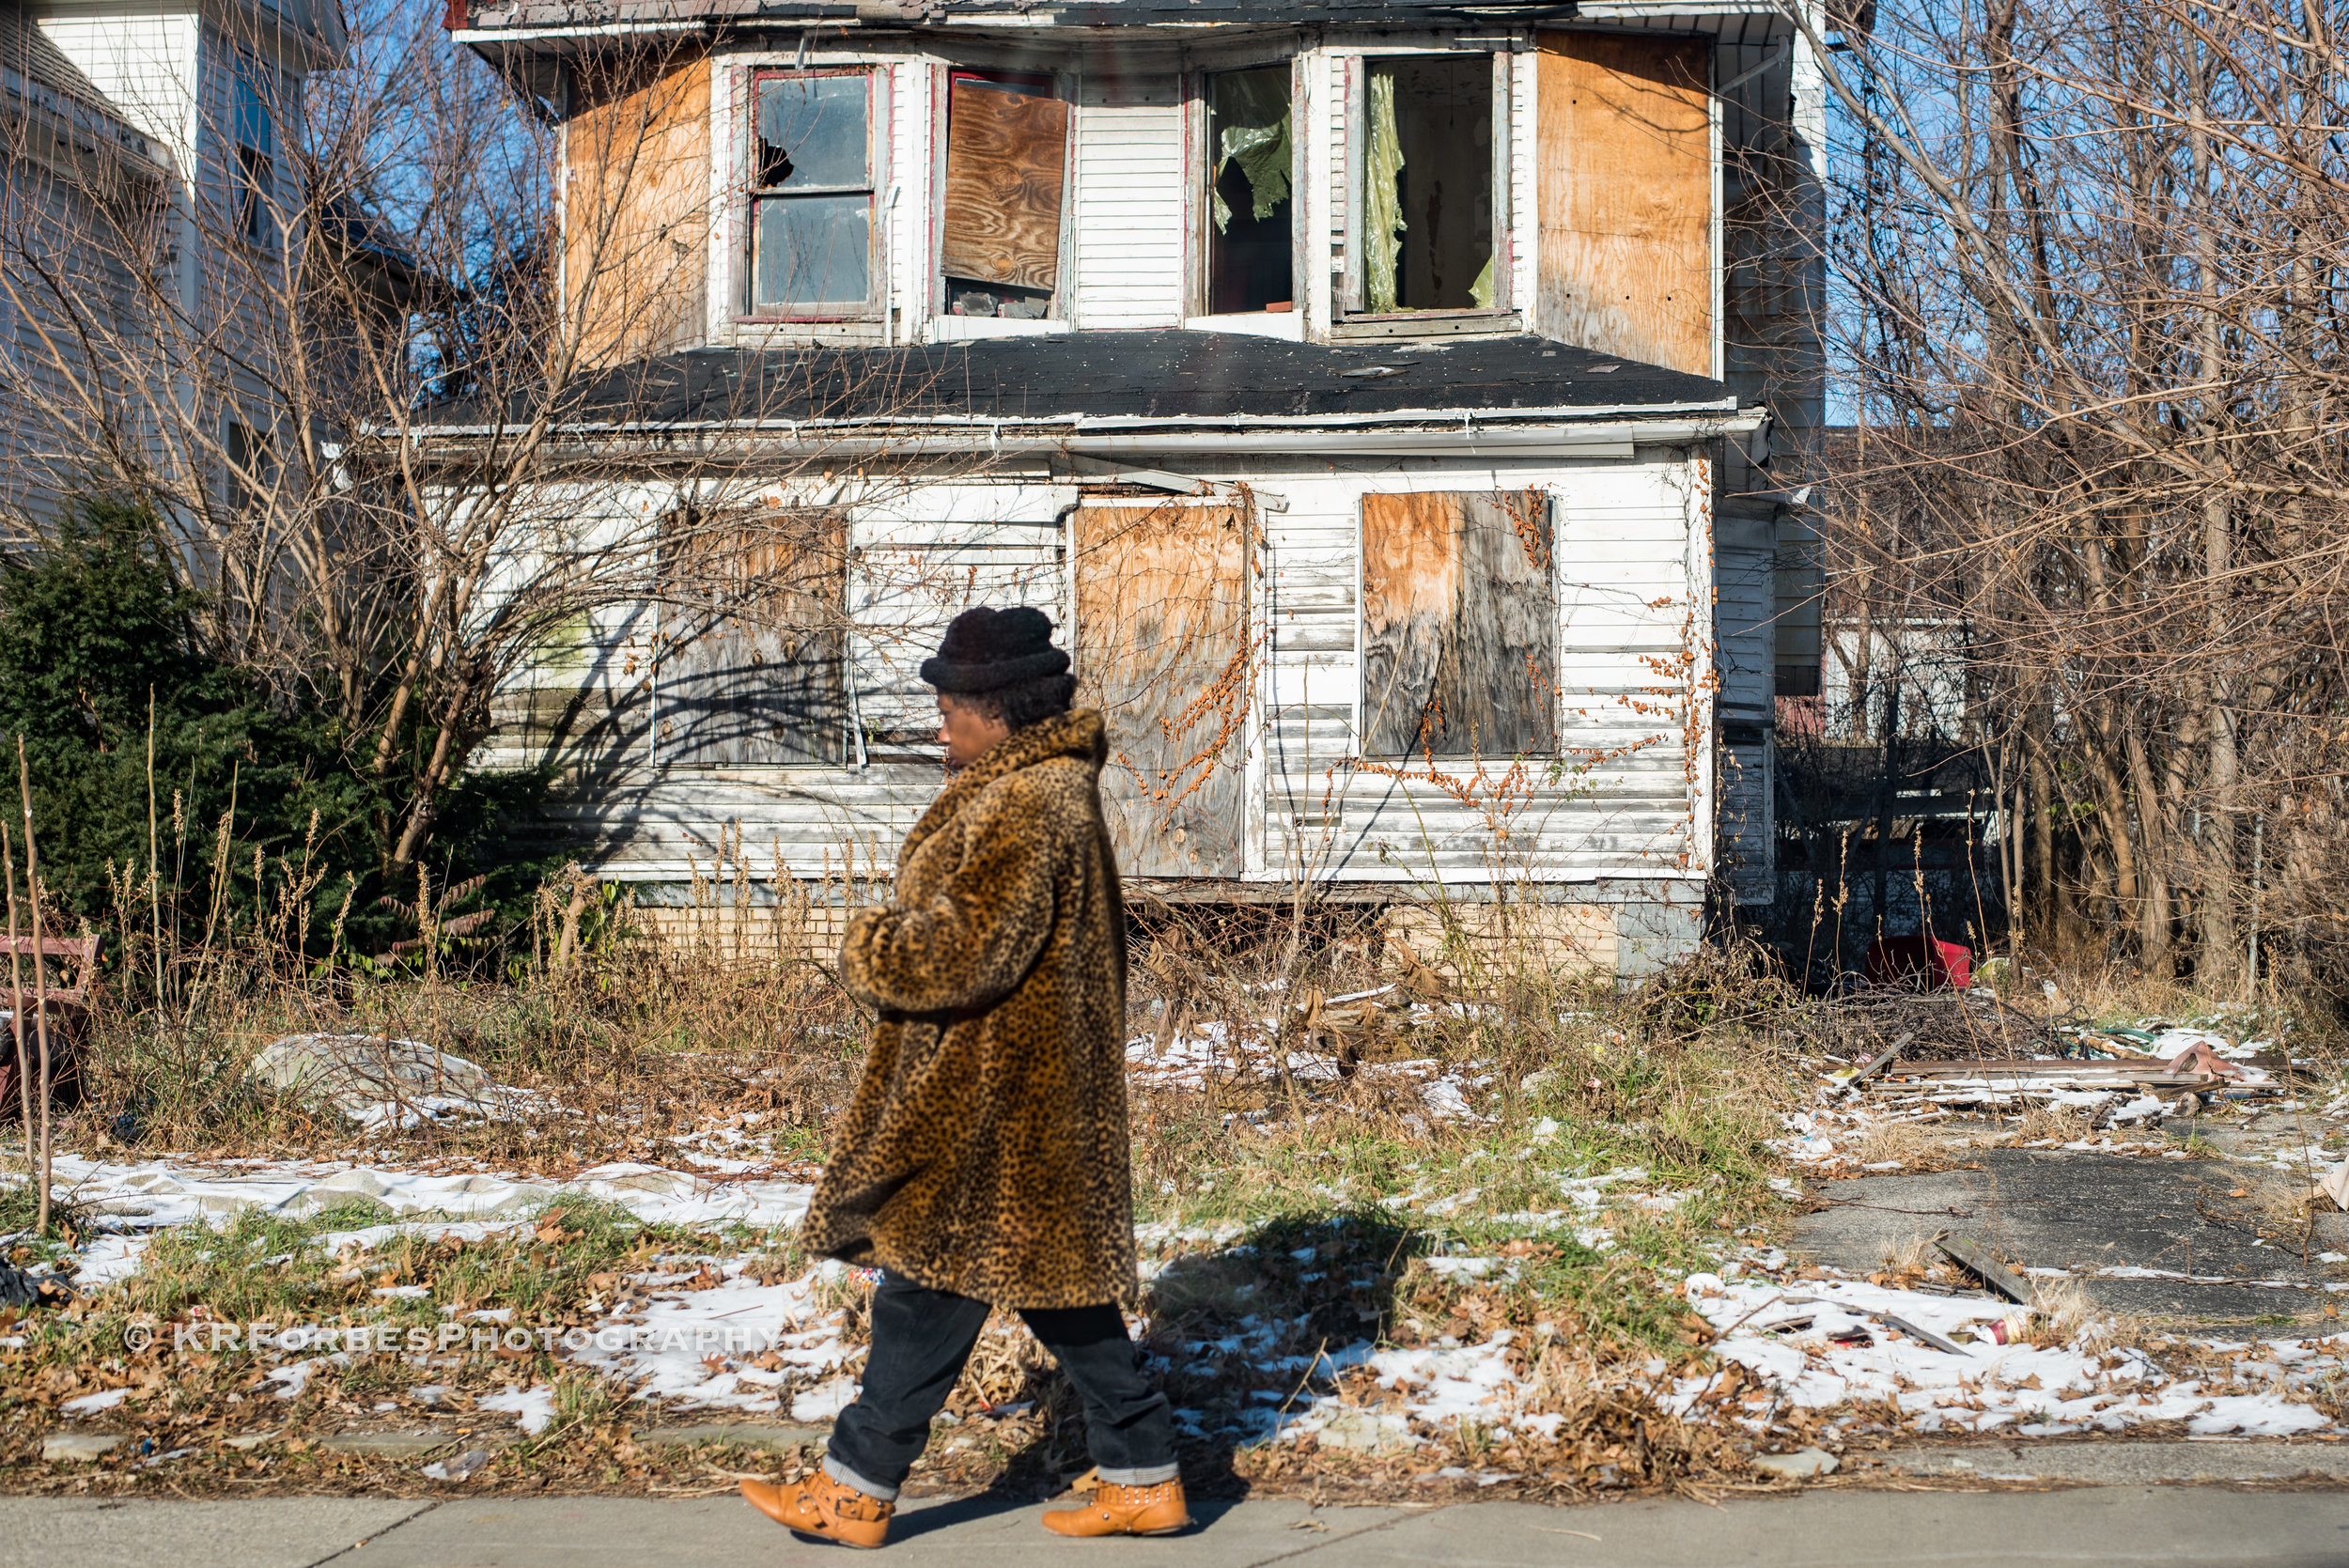 Midwest Poverty